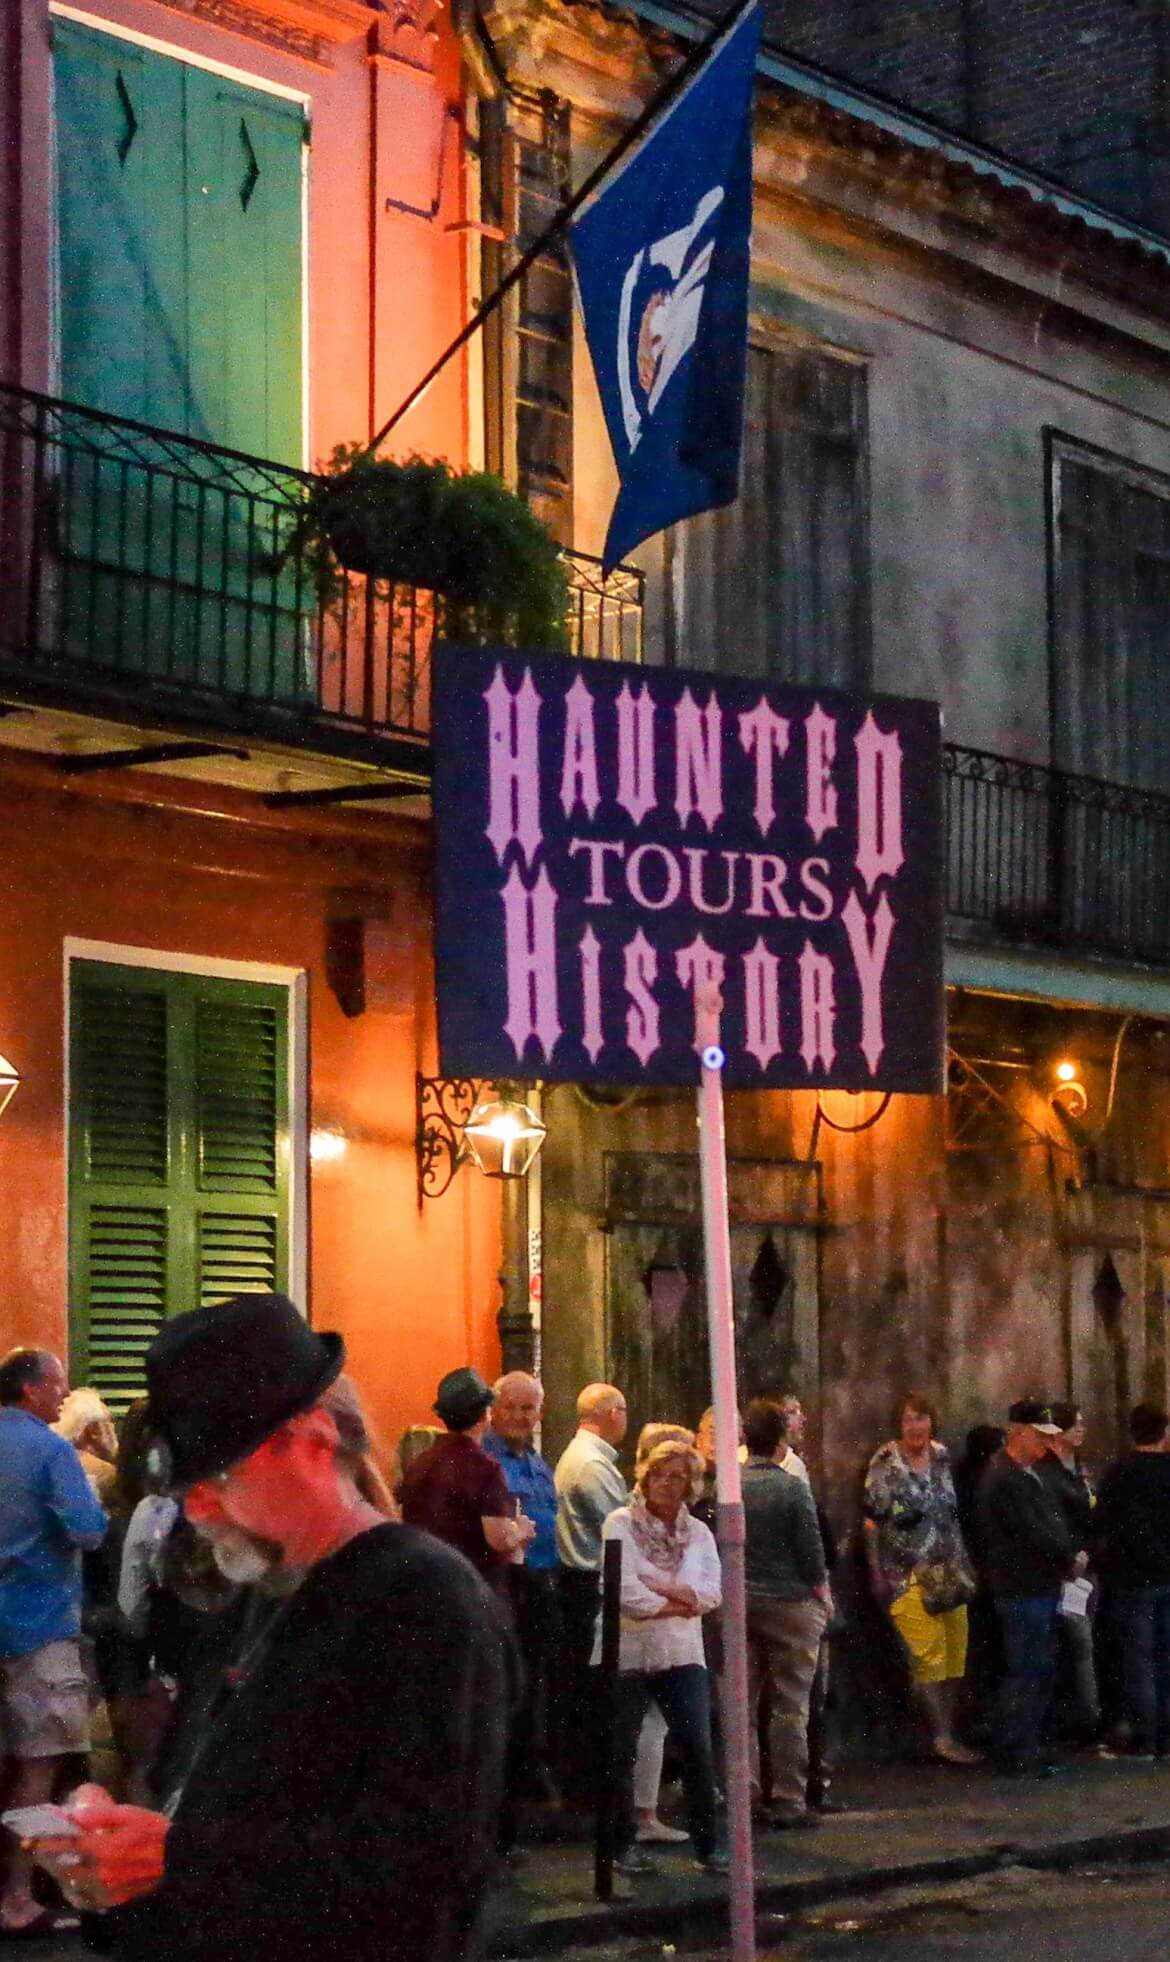 Haunted History Tours Things to do in New Orleans